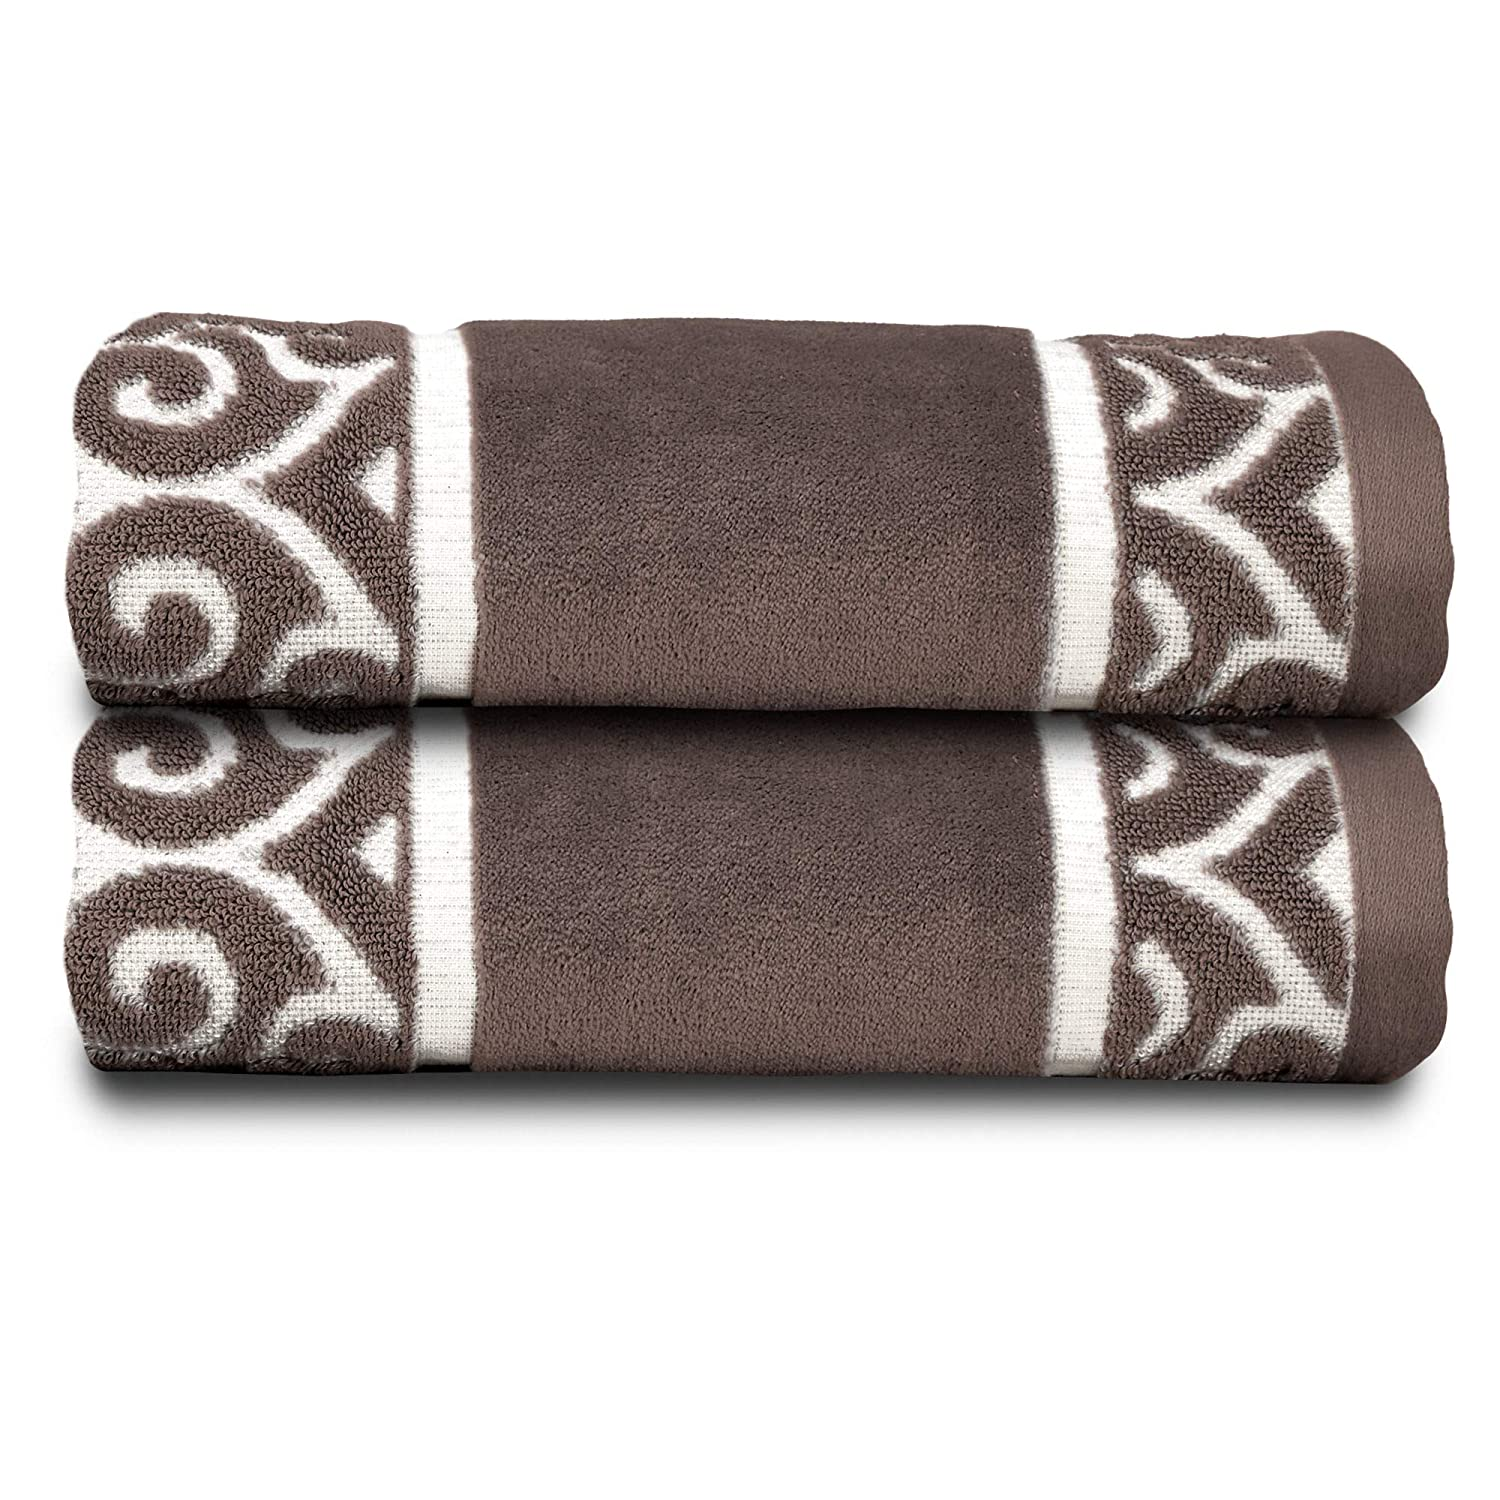 Soft Textilz Elegant 2 Piece Lightweight Luxury Kitchen Hand Towel Set - Premium European Decorative & Absorbent - Fancy Home/Guest Bathroom Cotton Towels - Large 35x19 - Charm Design Brown